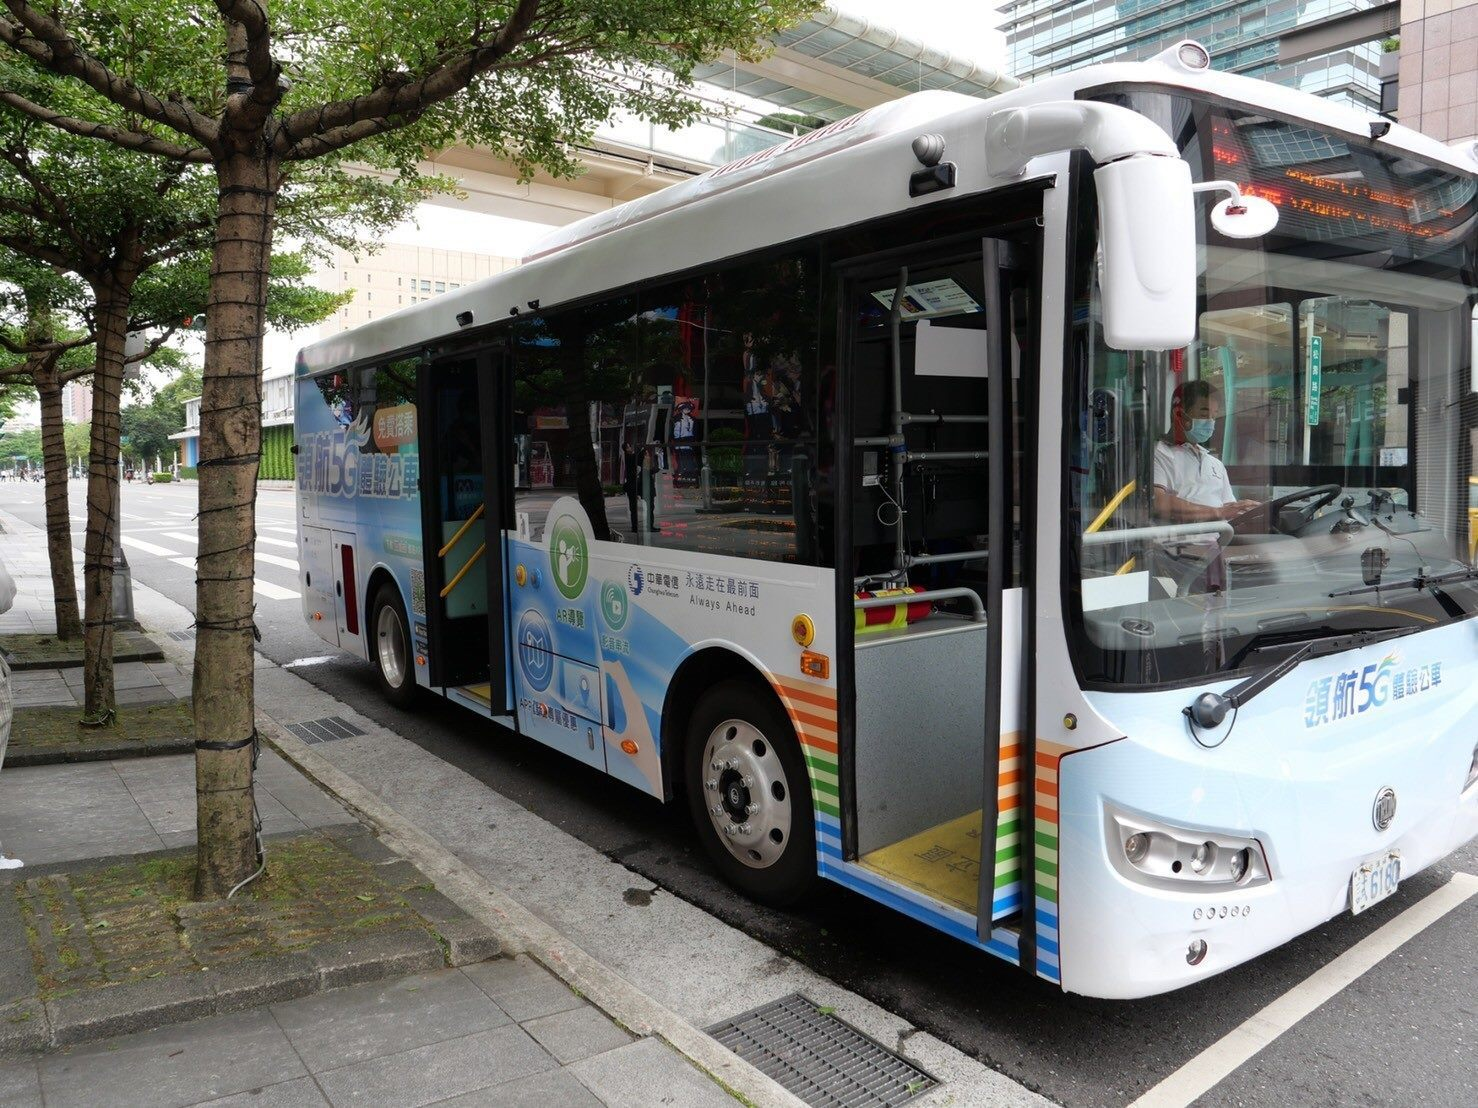 The 5G smart bus